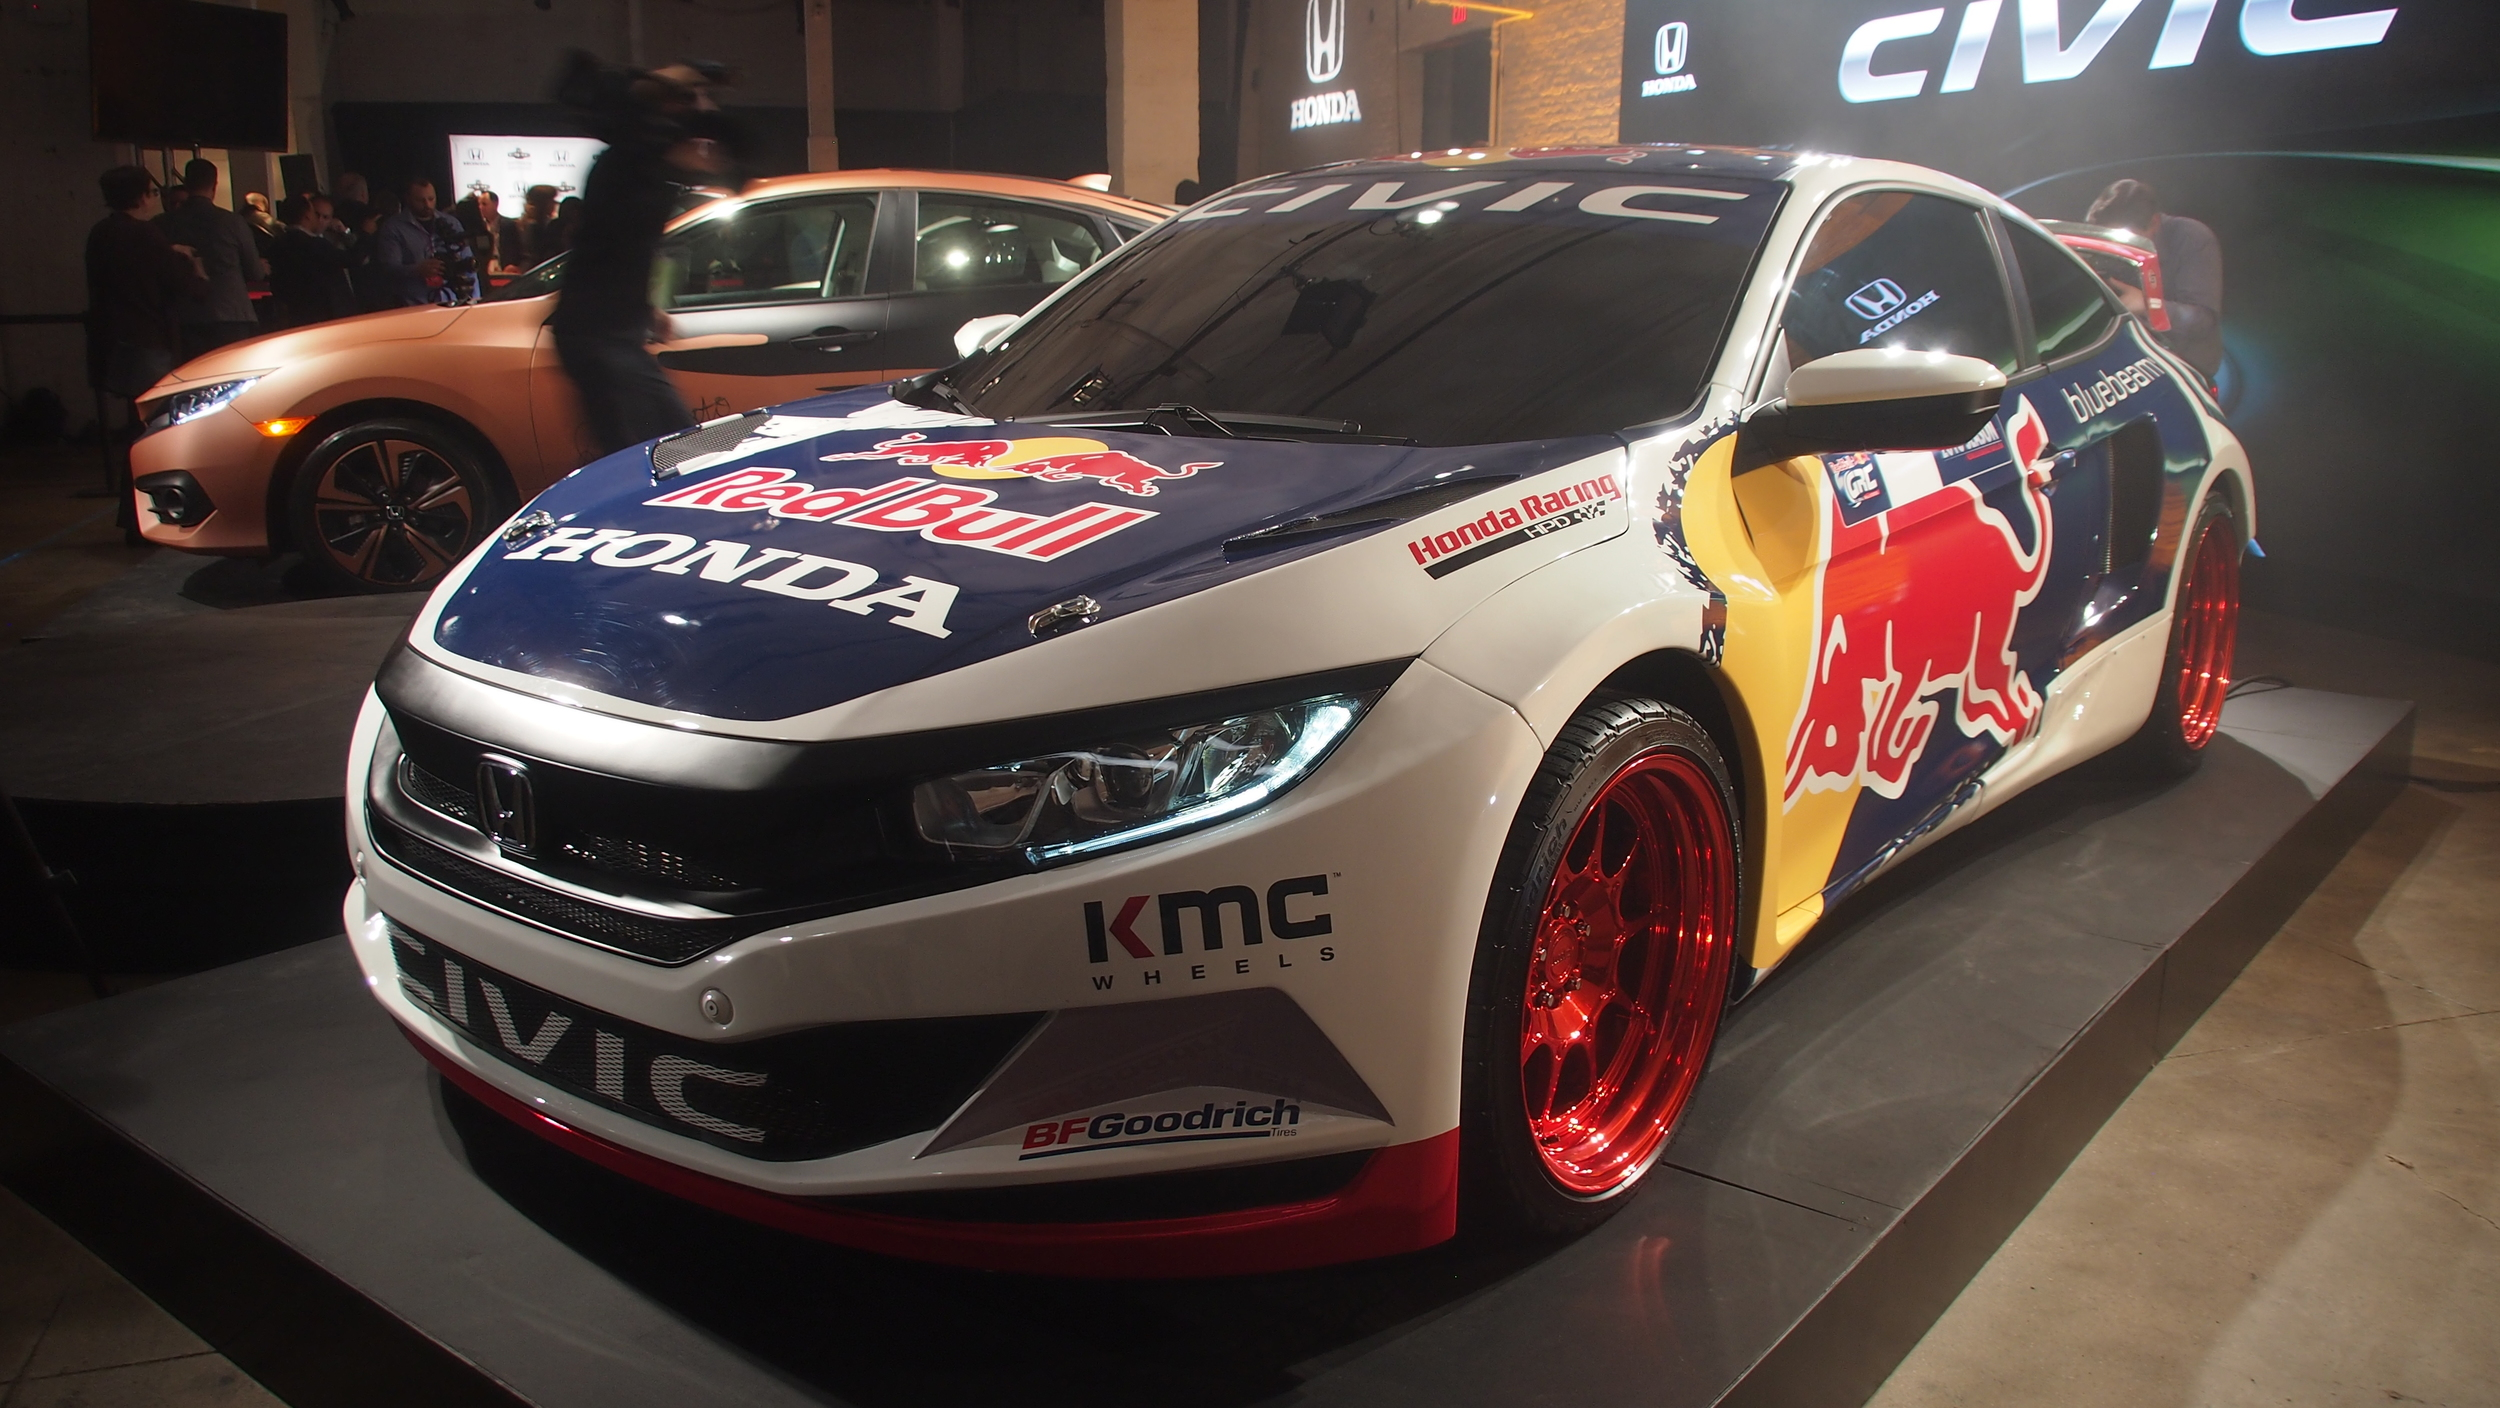 2016 honda civic coupe red bull global rallycross race car debuts in - Check Out The Honda Civic Coupe Global Rallycross Racecar 10th Gen Civic Forum